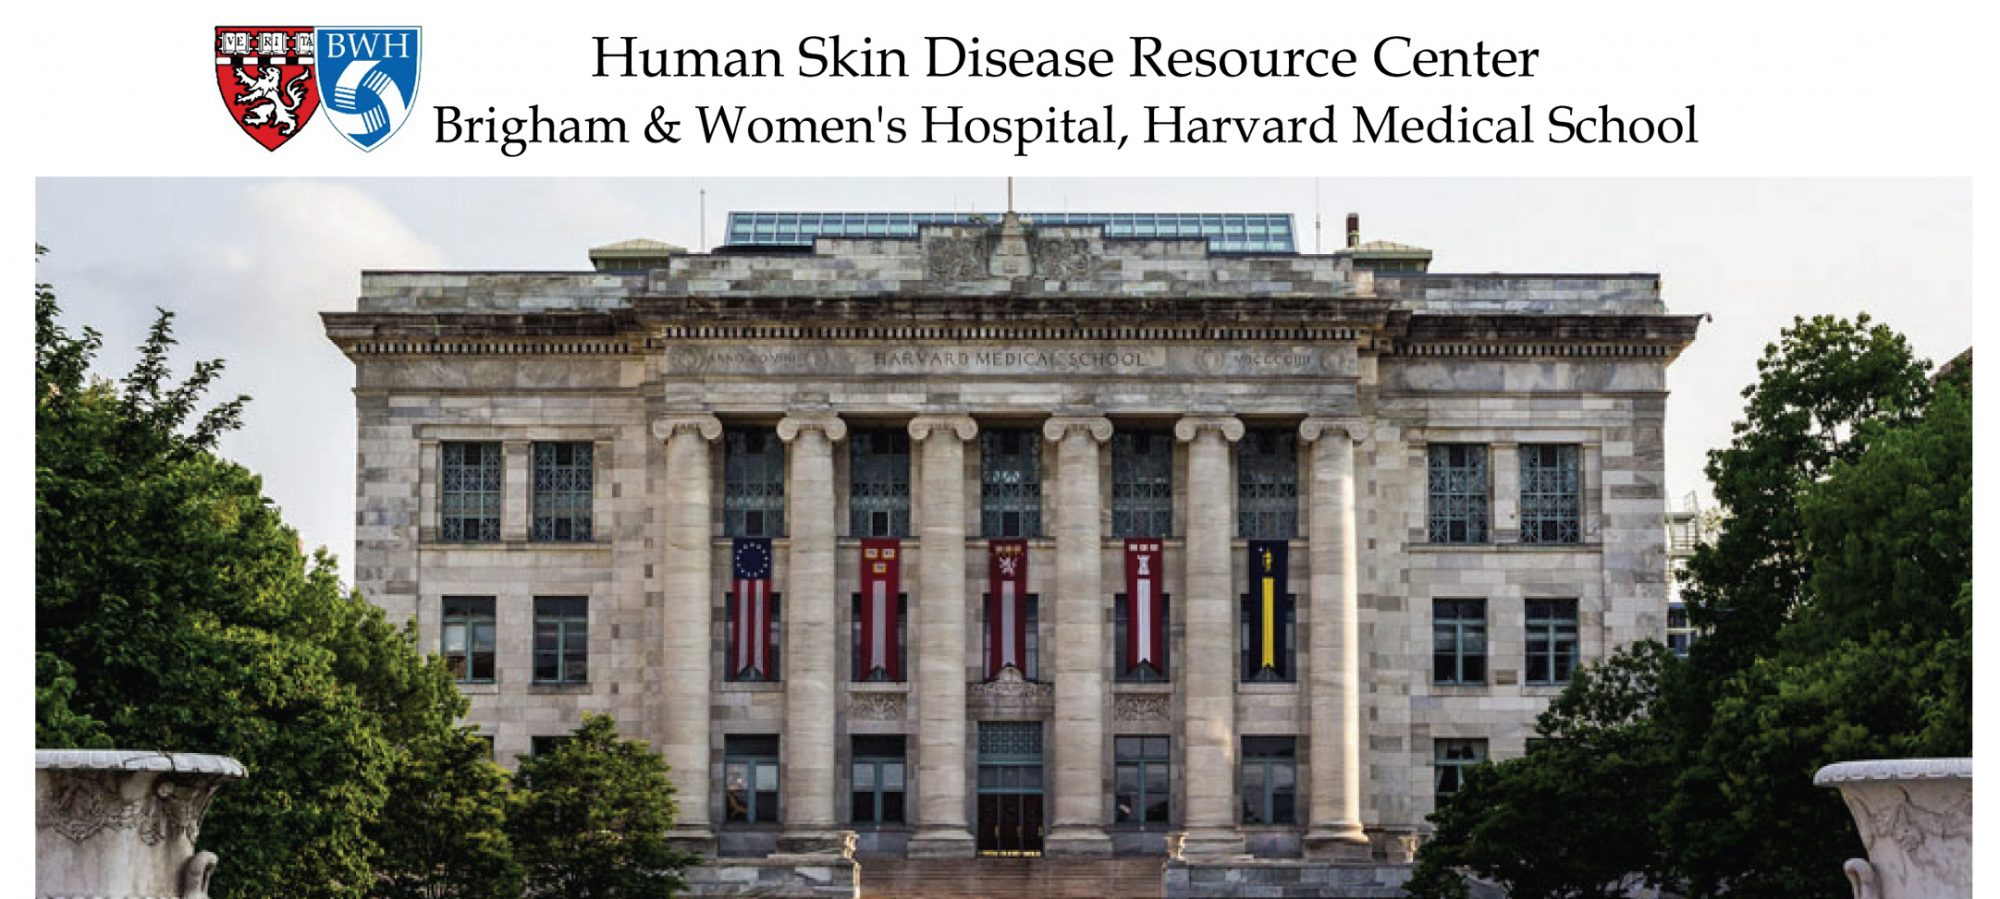 Human Skin Disease Resource Center